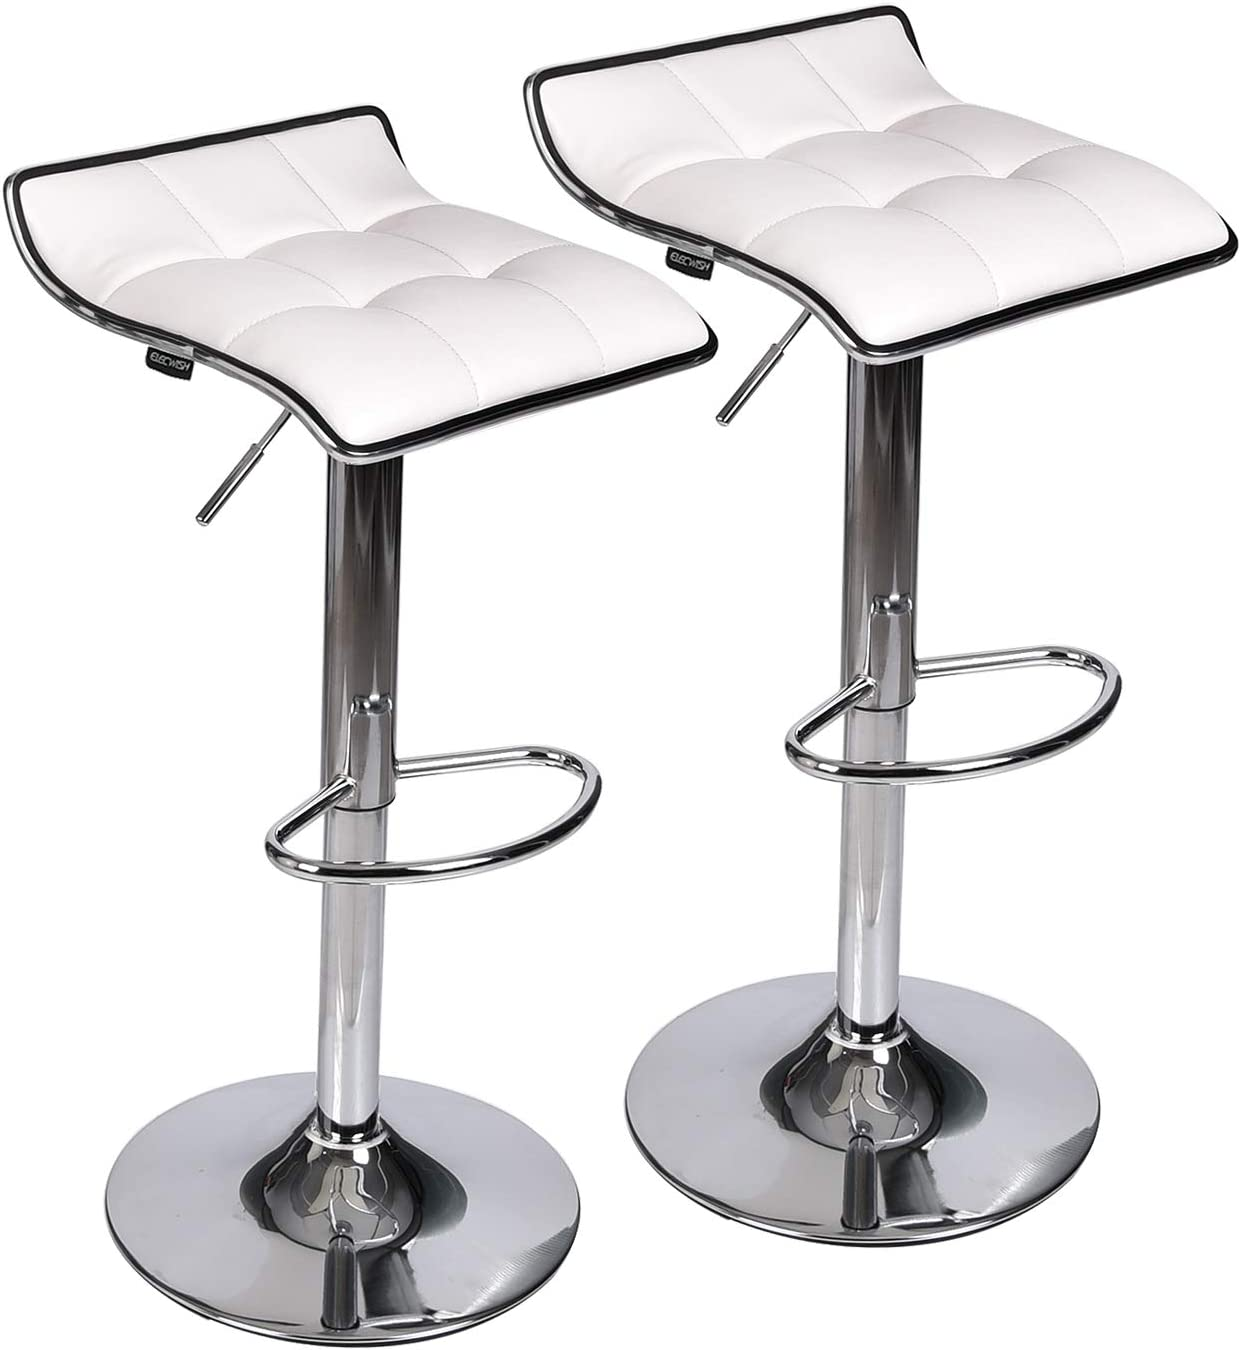 Set of 2 Adjustable Swivel Gas Lift Bar Stools, PU Leather with Chrome Base, White